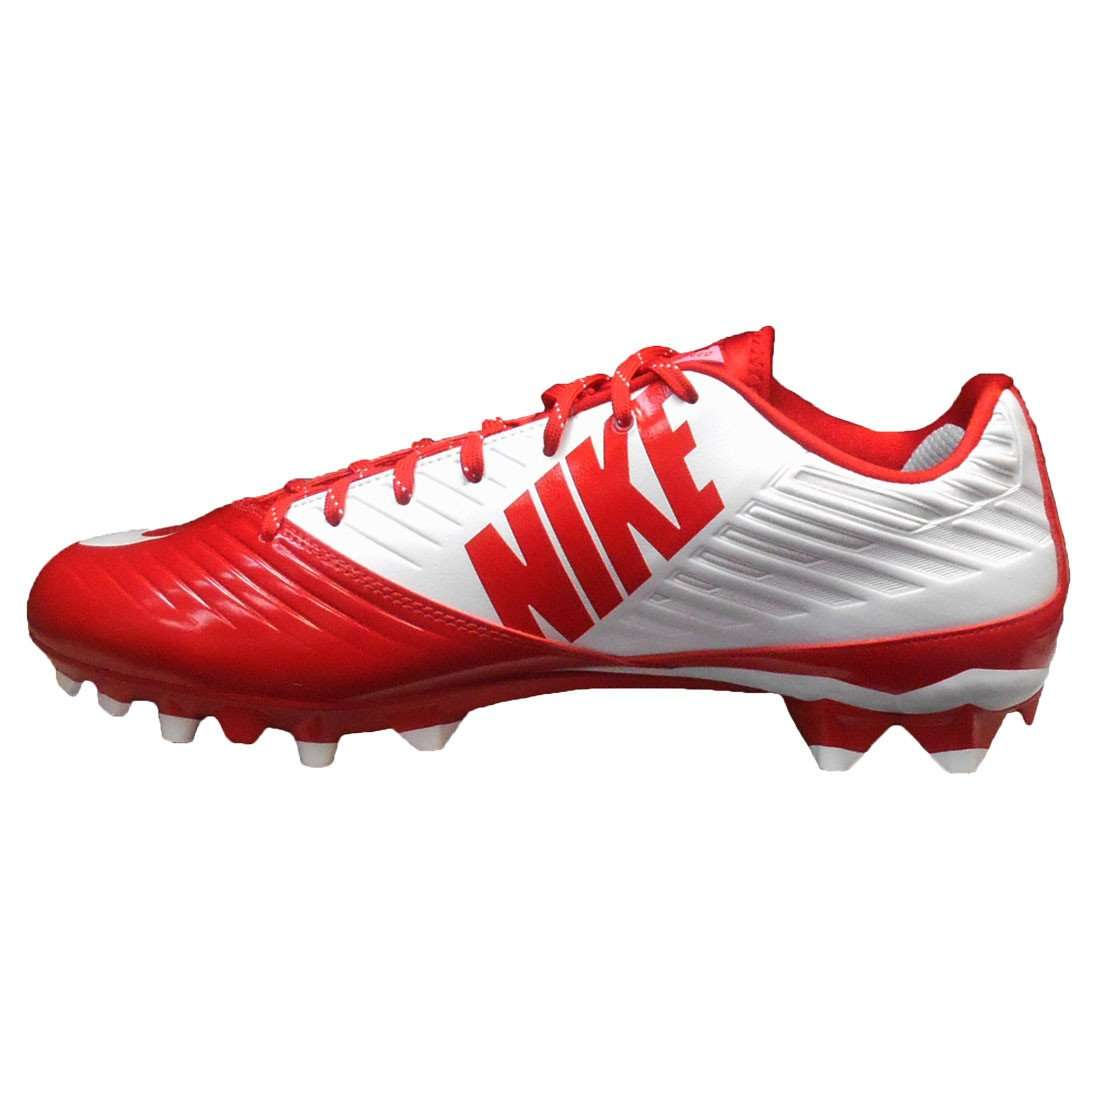 Nike Vapor Speed Low TD Football Cleats - League Outfitters .